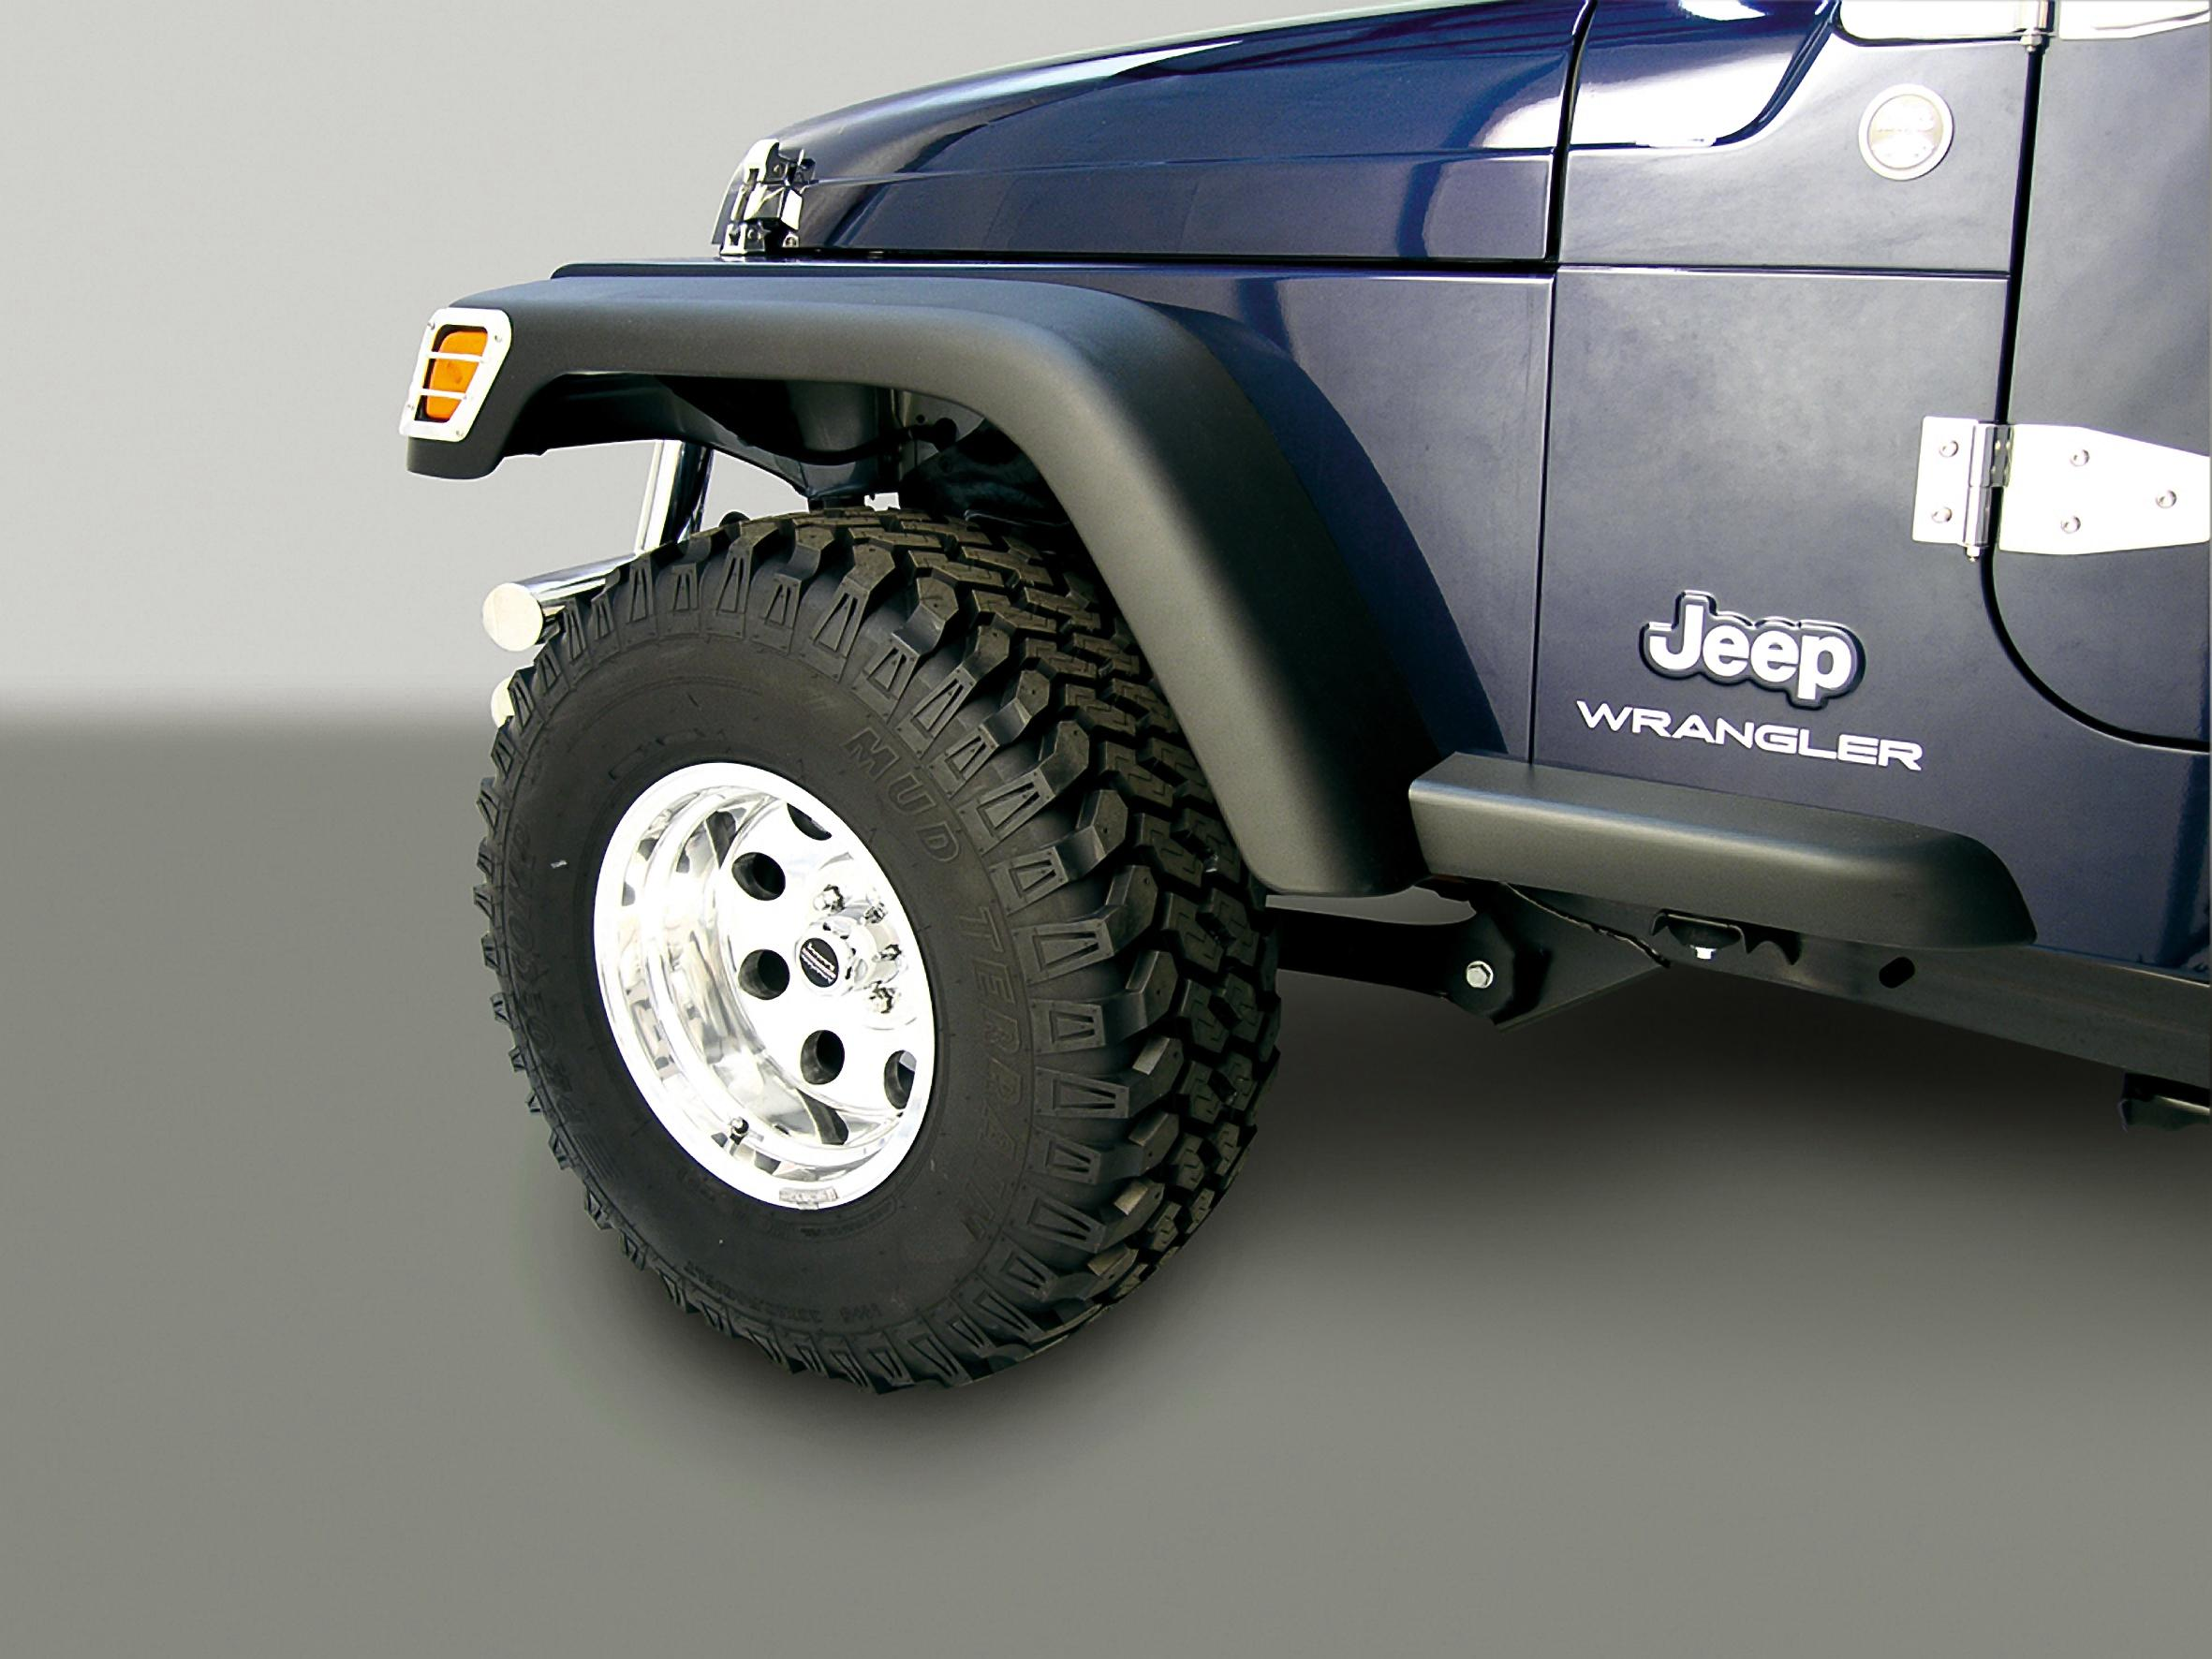 Rugged Ridge 1160811 7 Wide Fender Flare Without Bushwackercom 4945 Bushwackerbuilds Jeepwranglerfrontenddiagram Need A Little Extra Coverage For Those Over Sized Tires The Inch Program Gives You While Still Maintaining